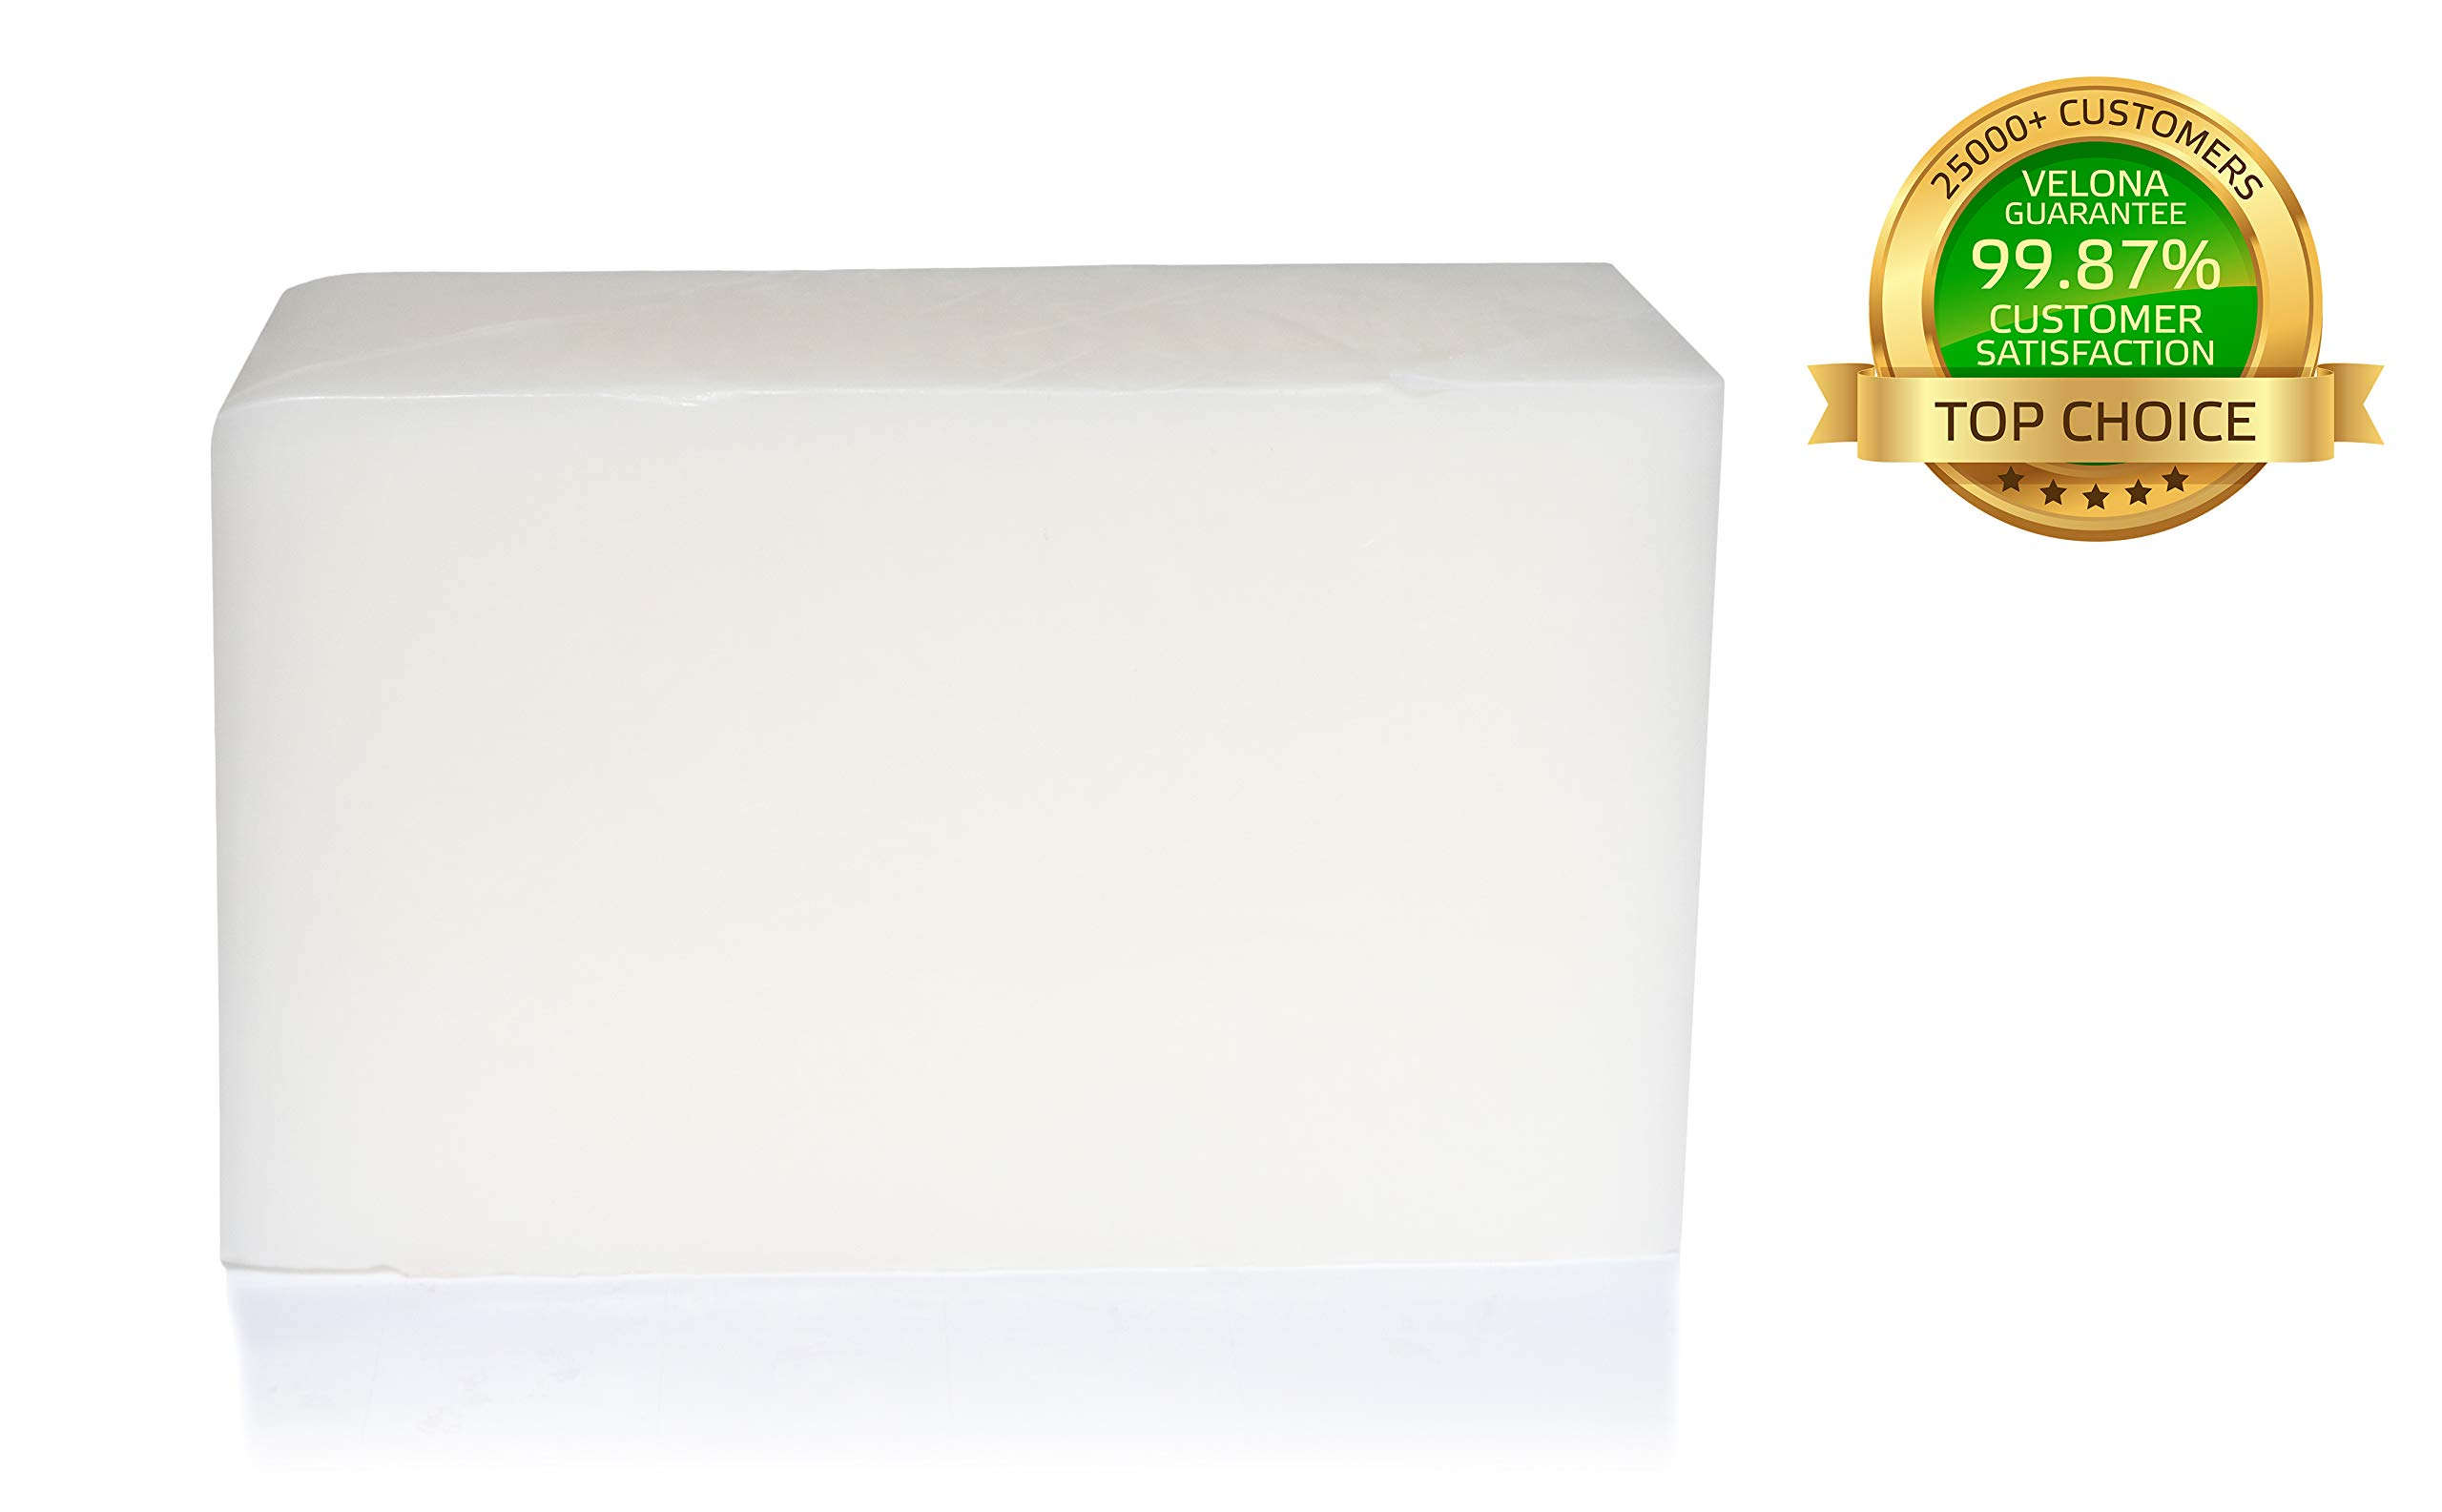 100% Organic Glycerin & SHEA Butter Soap Base by Velona   Melt & Pour All Natural Bar for The Best Result   Size: 10 lb